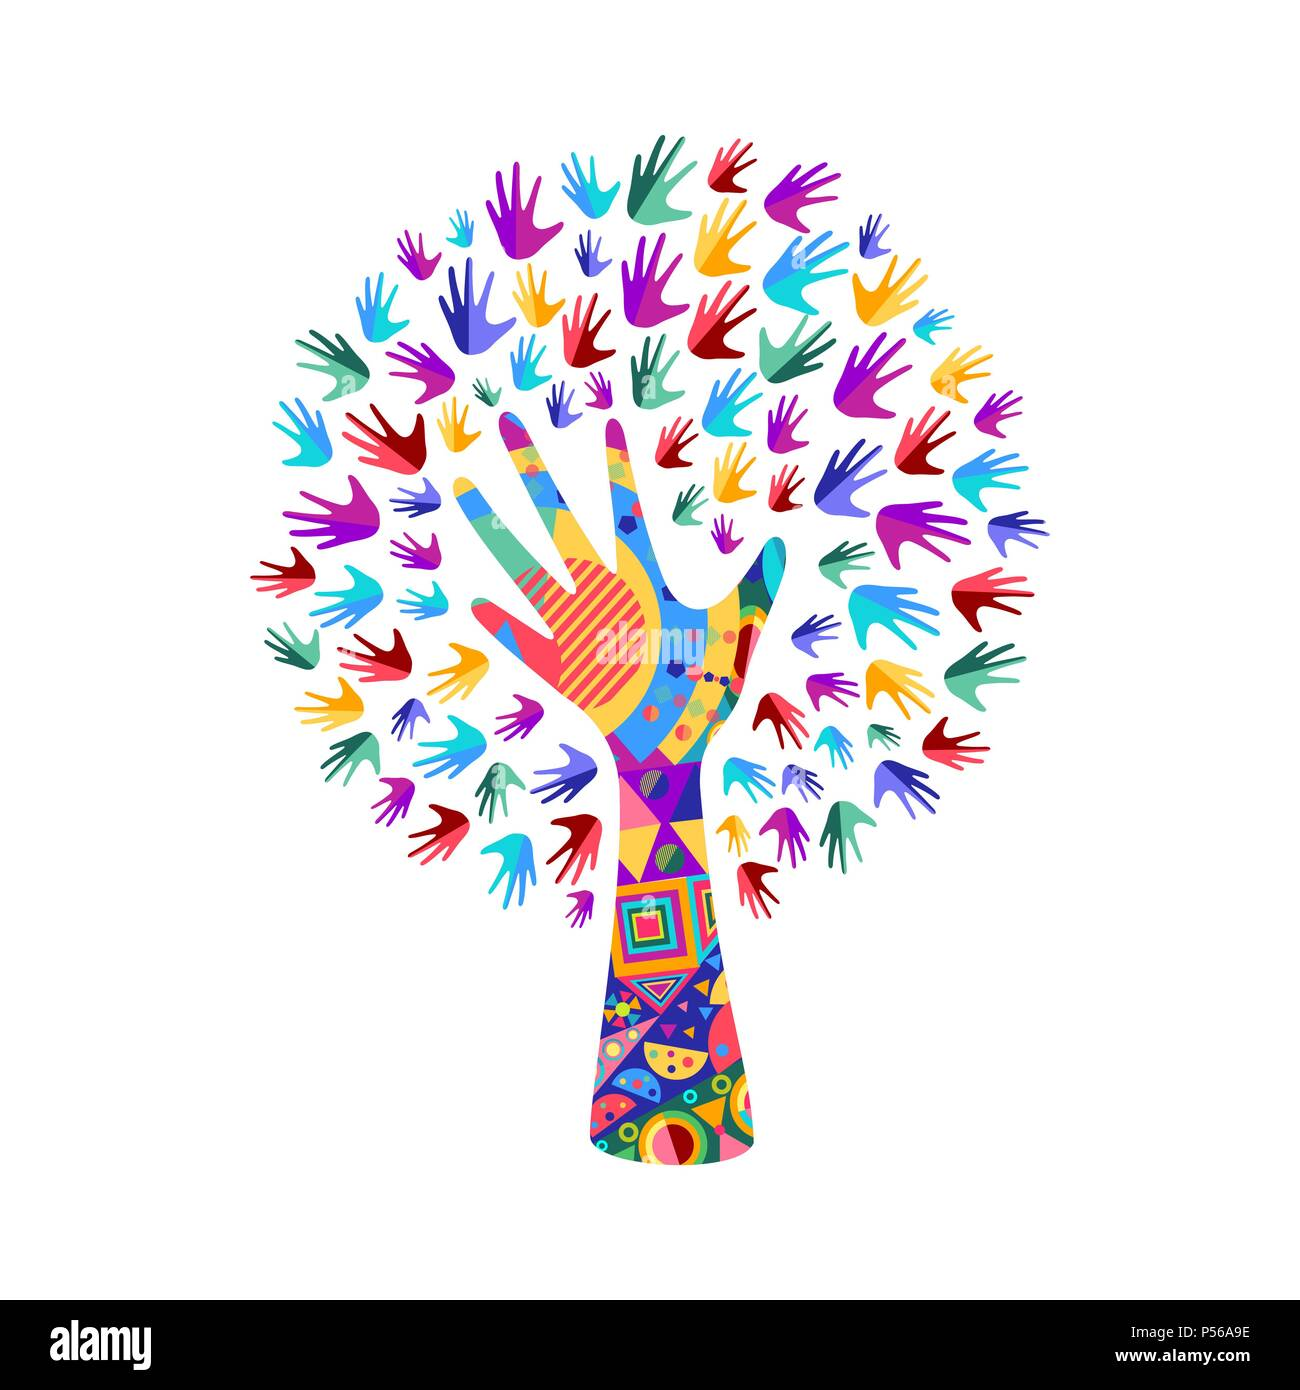 Tree Symbol With Colorful Human Hands Concept Illustration For